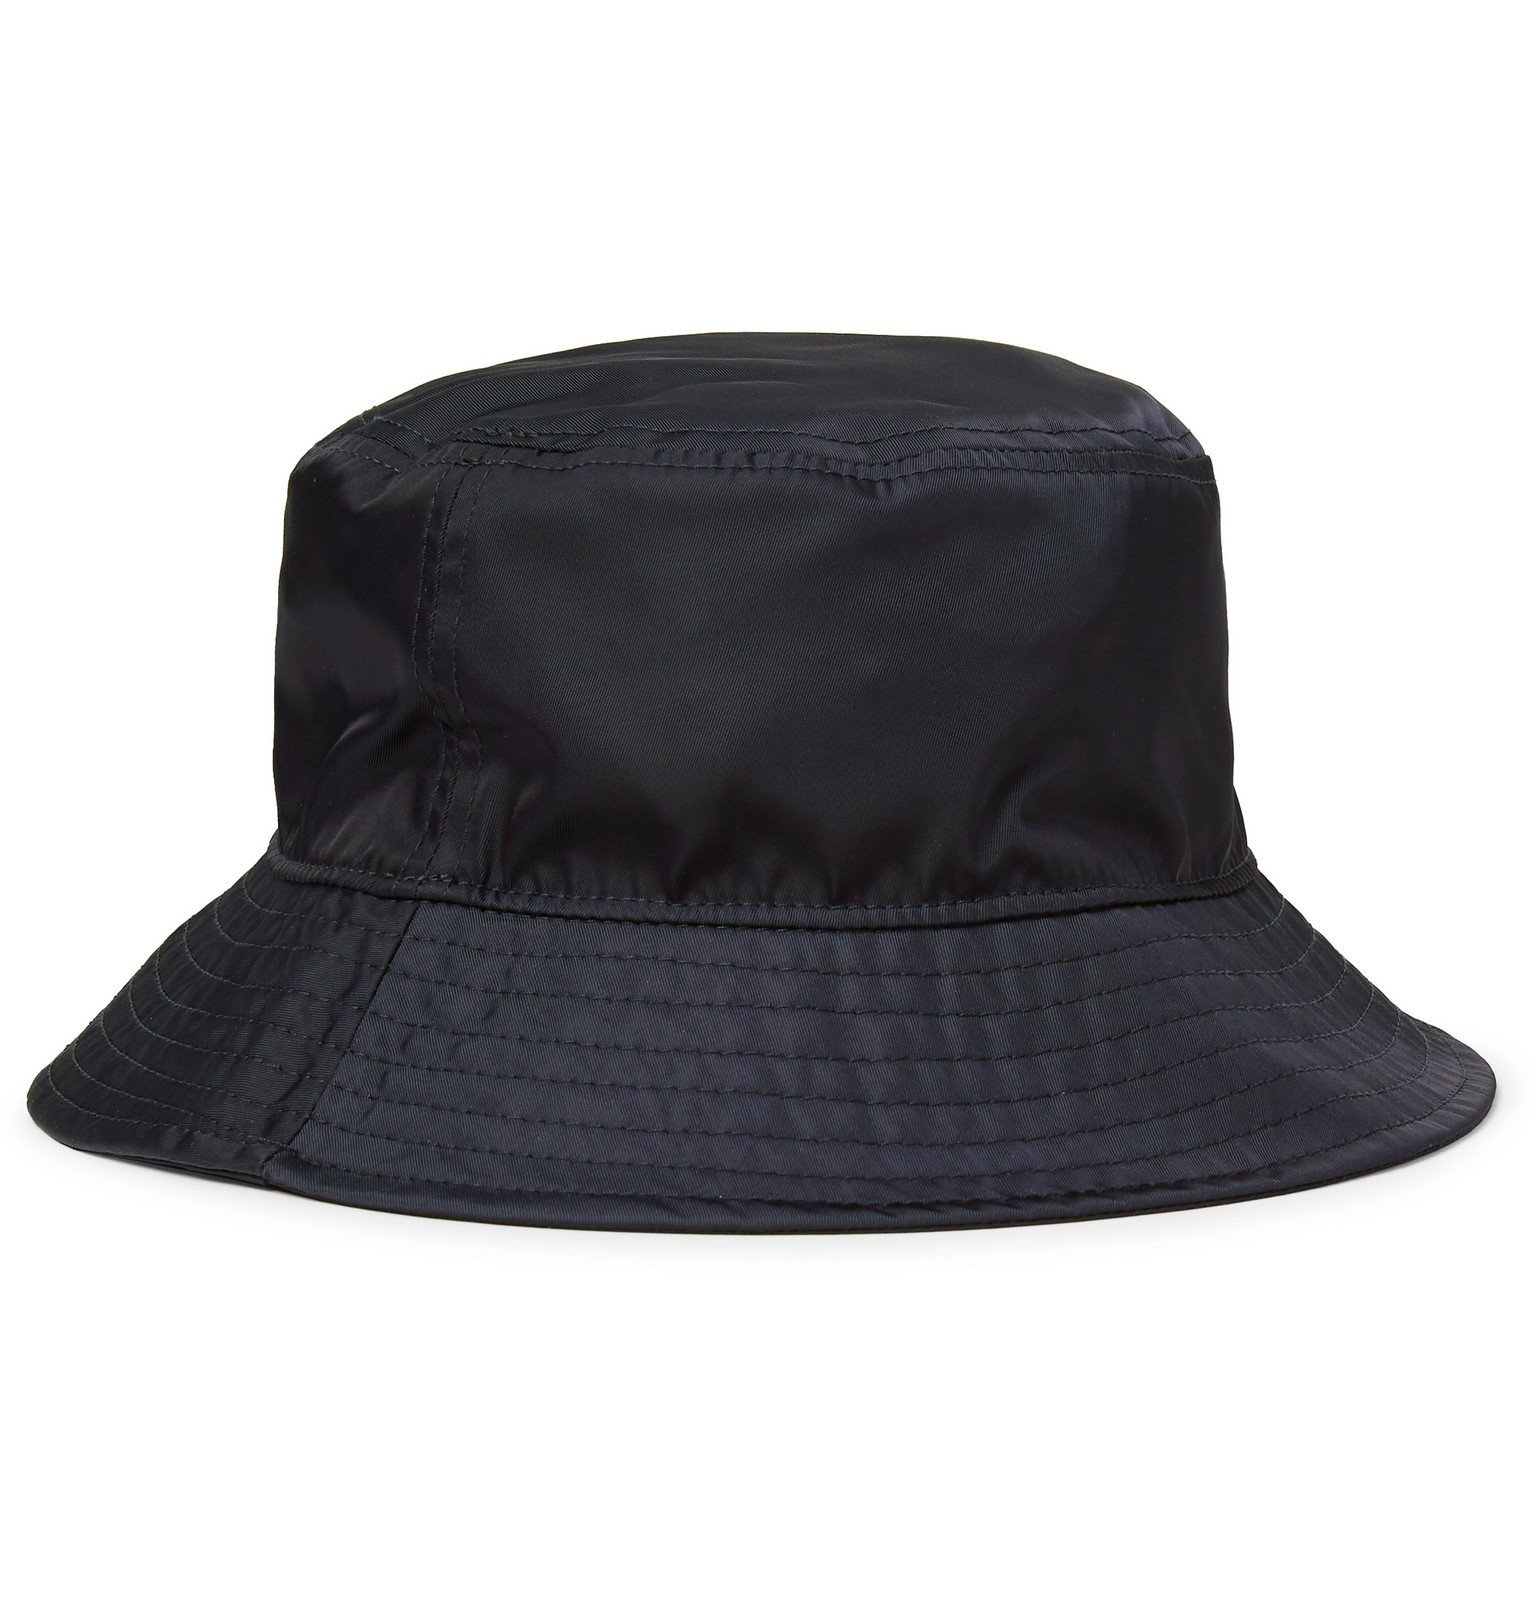 Moncler - Logo-Appliquéd Nylon Bucket Hat - Blue